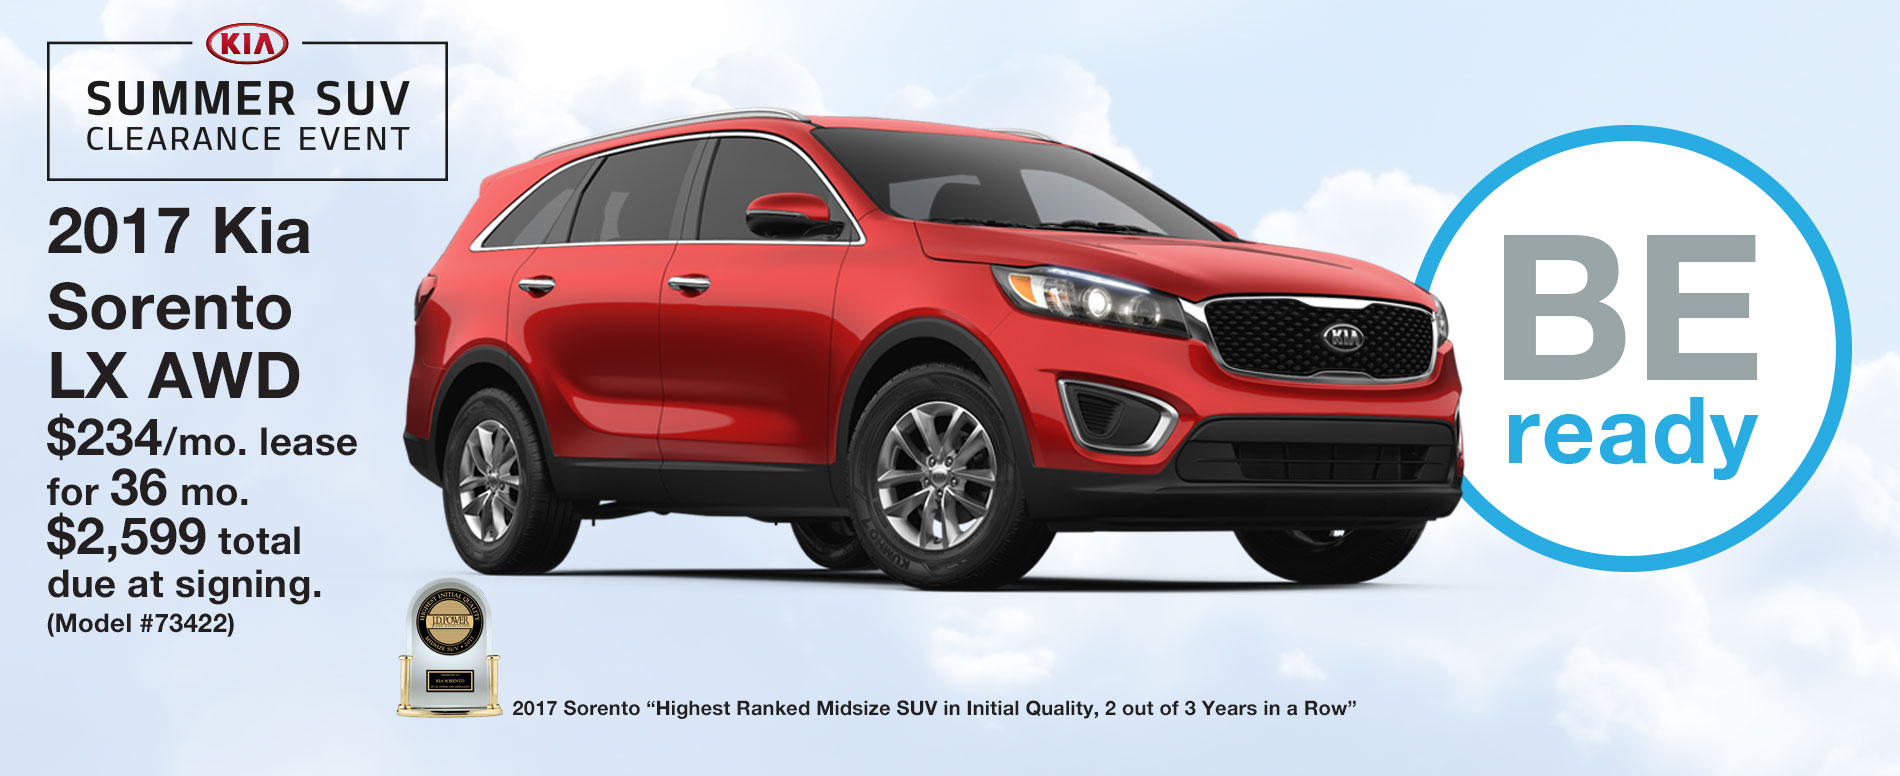 2017 Kia Sorento LX AWD Lease $234 per month for 36 months with $2,599 due at signing